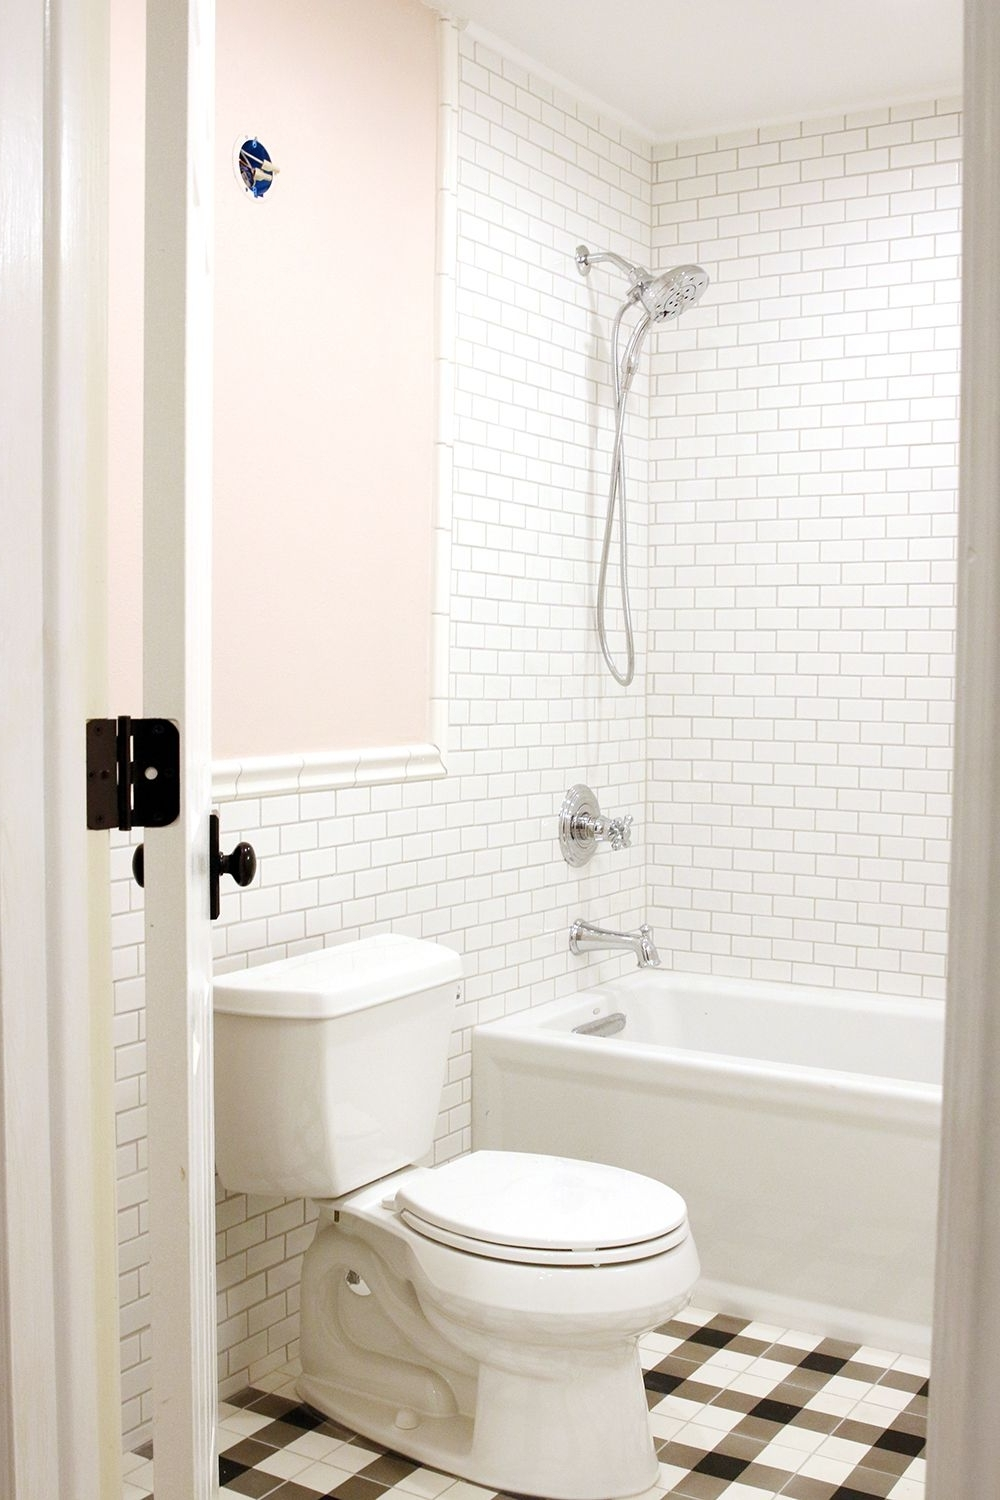 Choosing A Paint Color For Our Small, Windowless Bathroom Windowless Bathroom Design